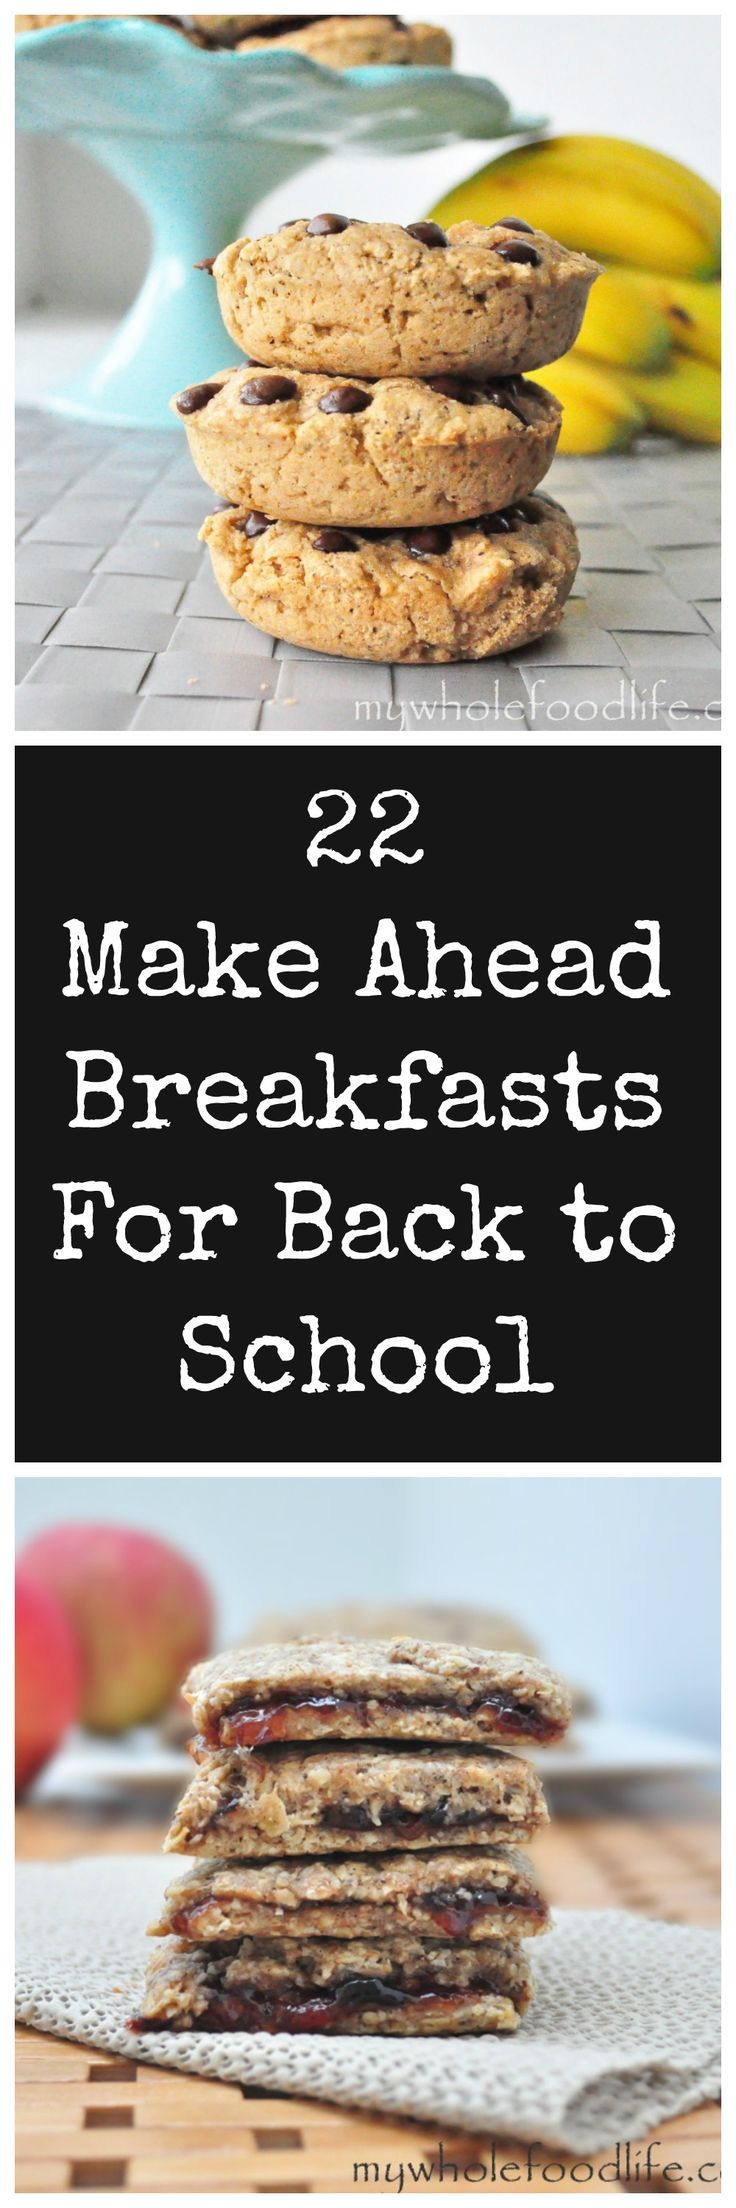 12 Make Ahead Breakfasts for Back to School Mornings #healthy #breakfast #backtoschool